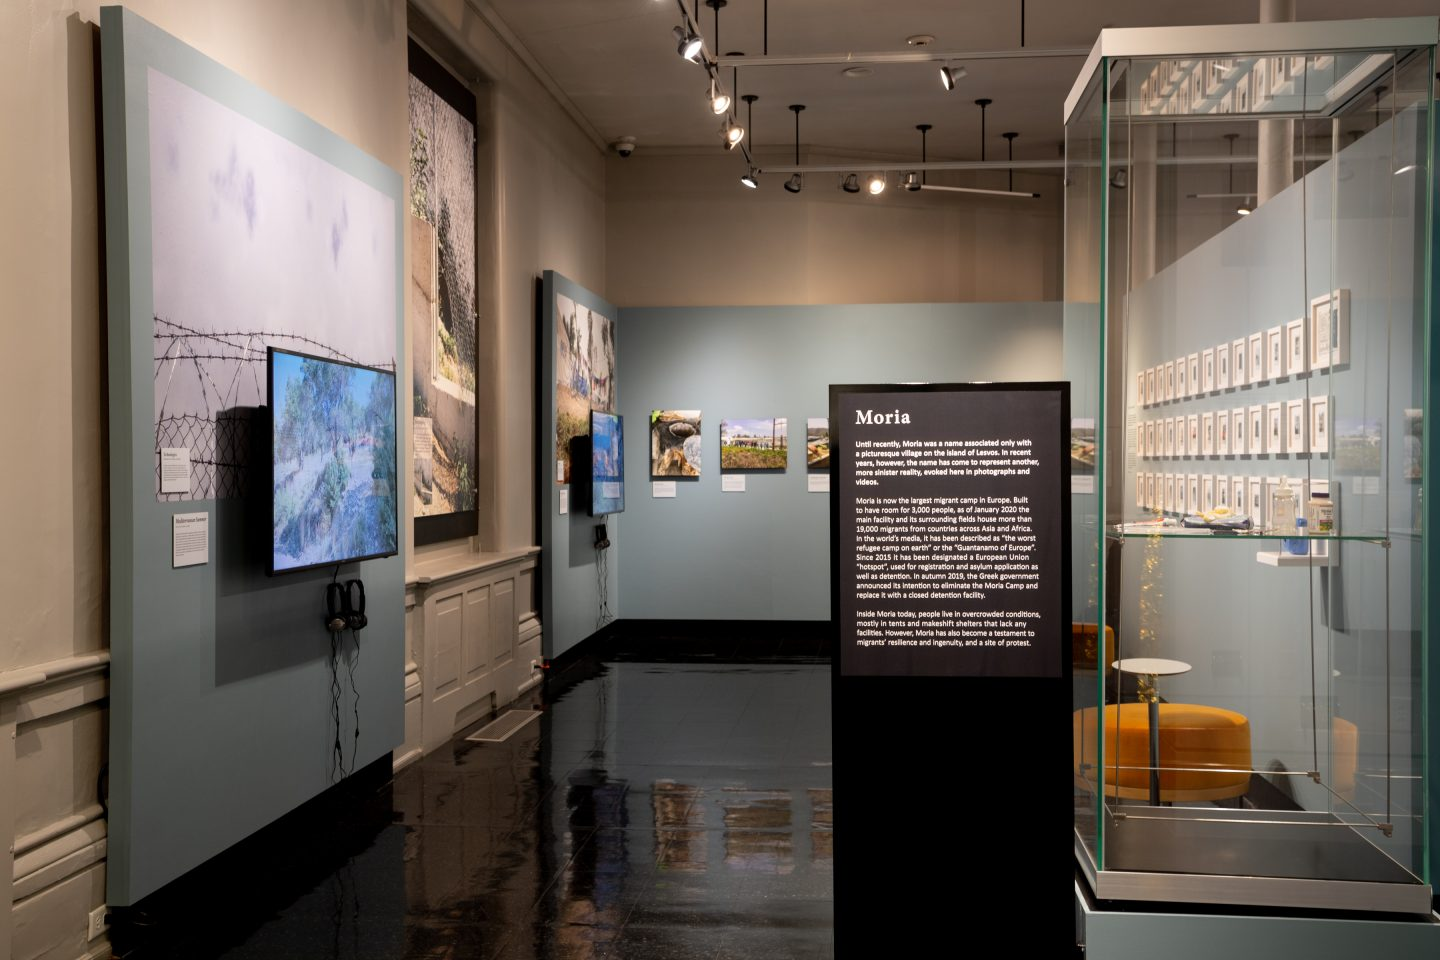 Photo of interior of the Haffenreffer Museum gallery, Transient Matter exhibit, Moria section.